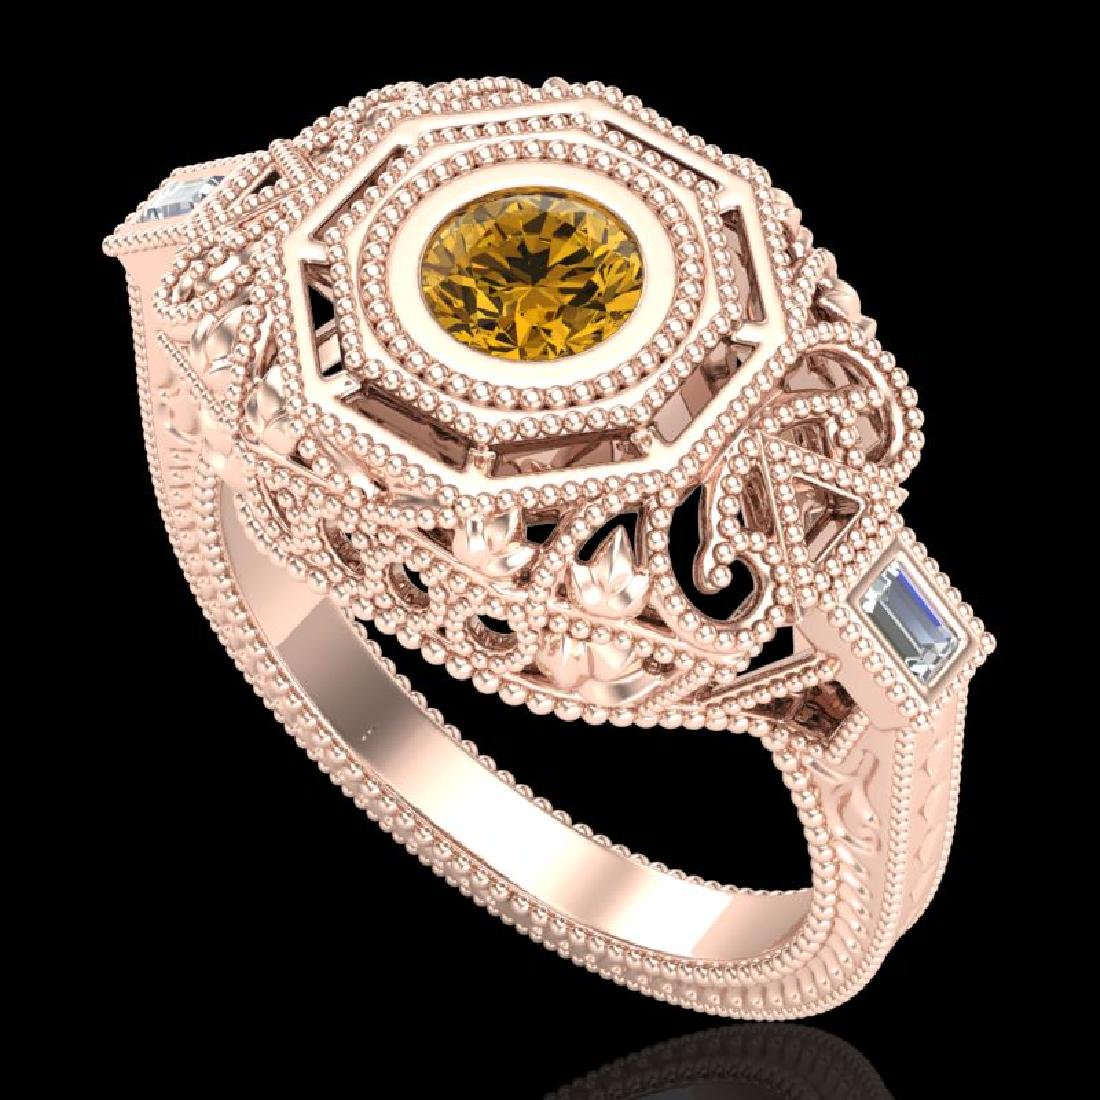 0.75 CTW Intense Fancy Yellow Diamond Engagement Art